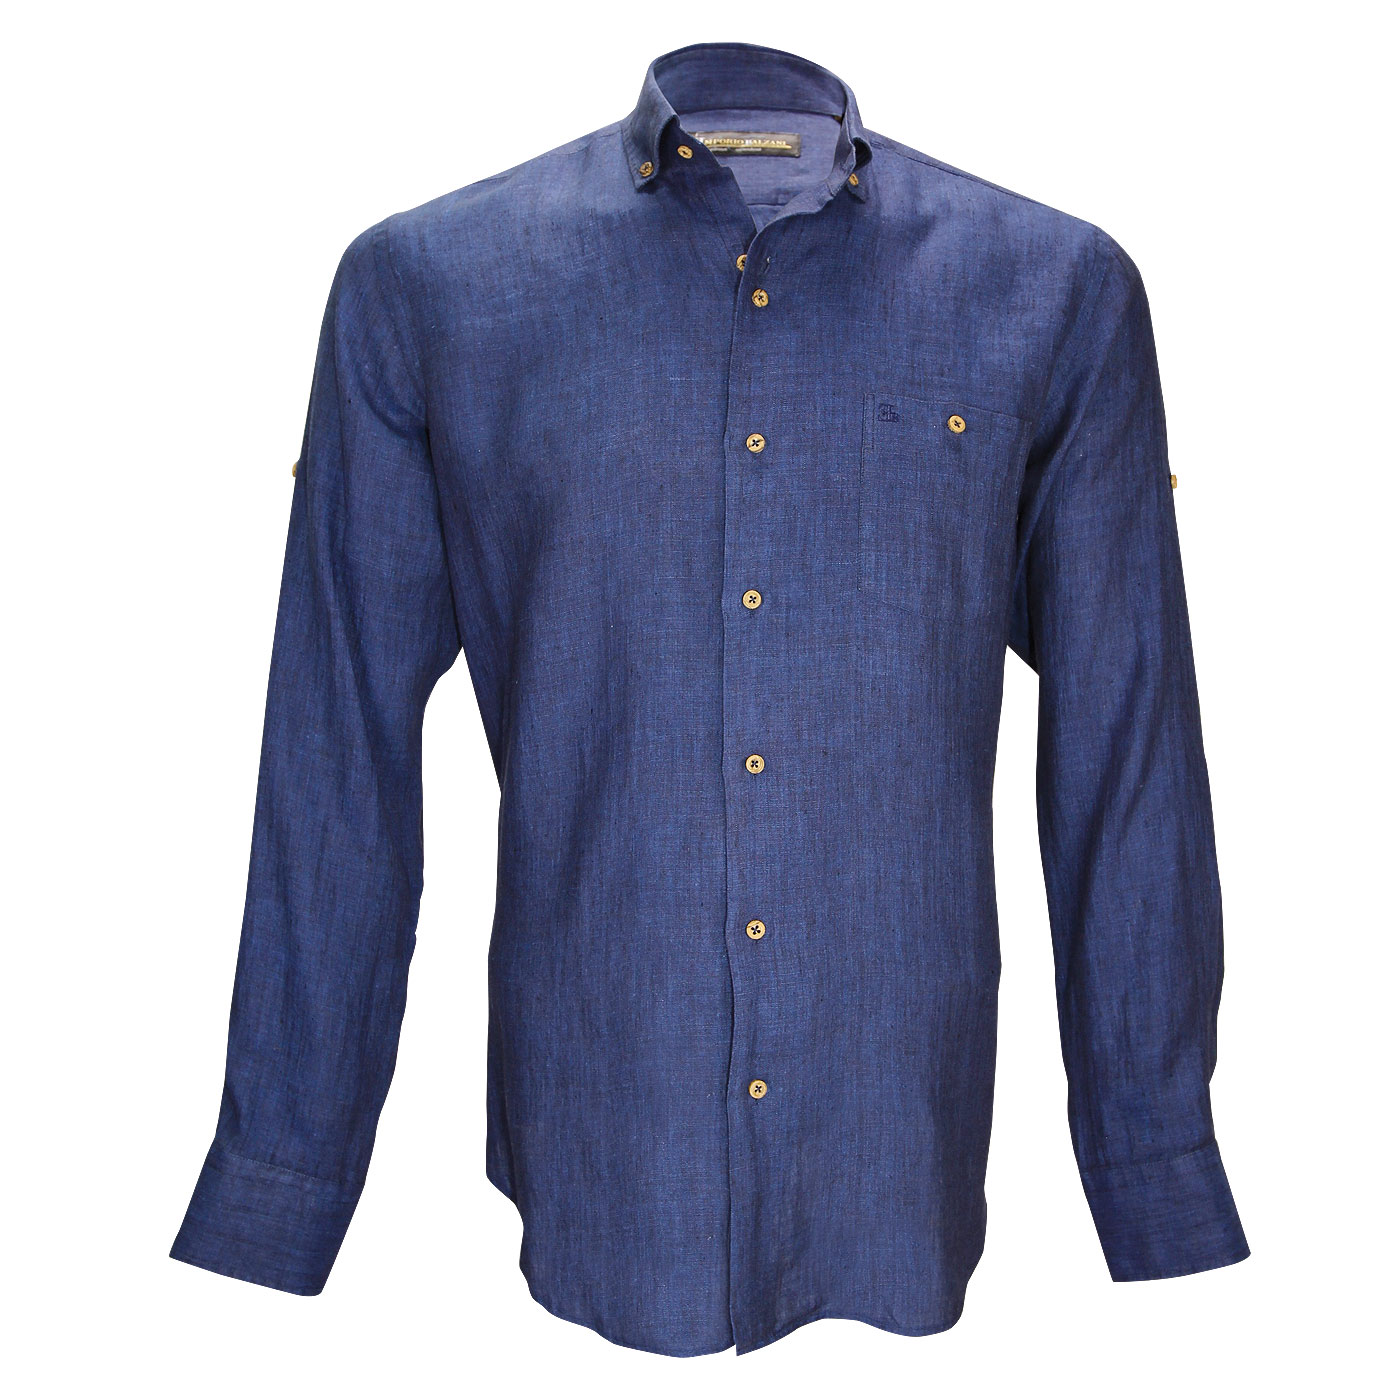 Linen Men's Shirts  Have a Look Webmenshirts collection